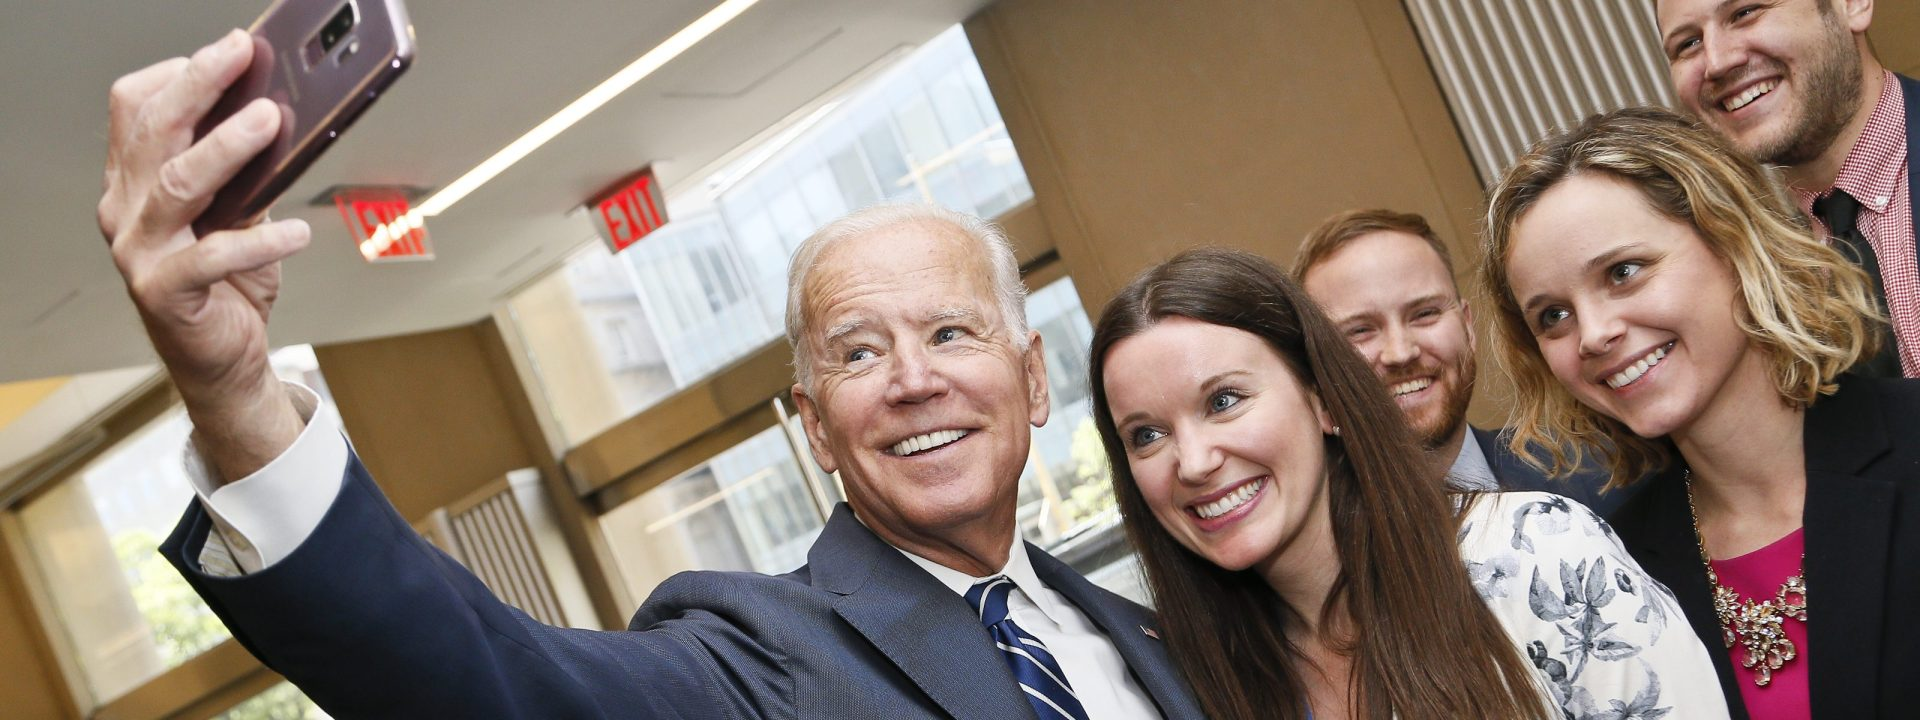 Joe Biden takes a selfie with Brookings staff.